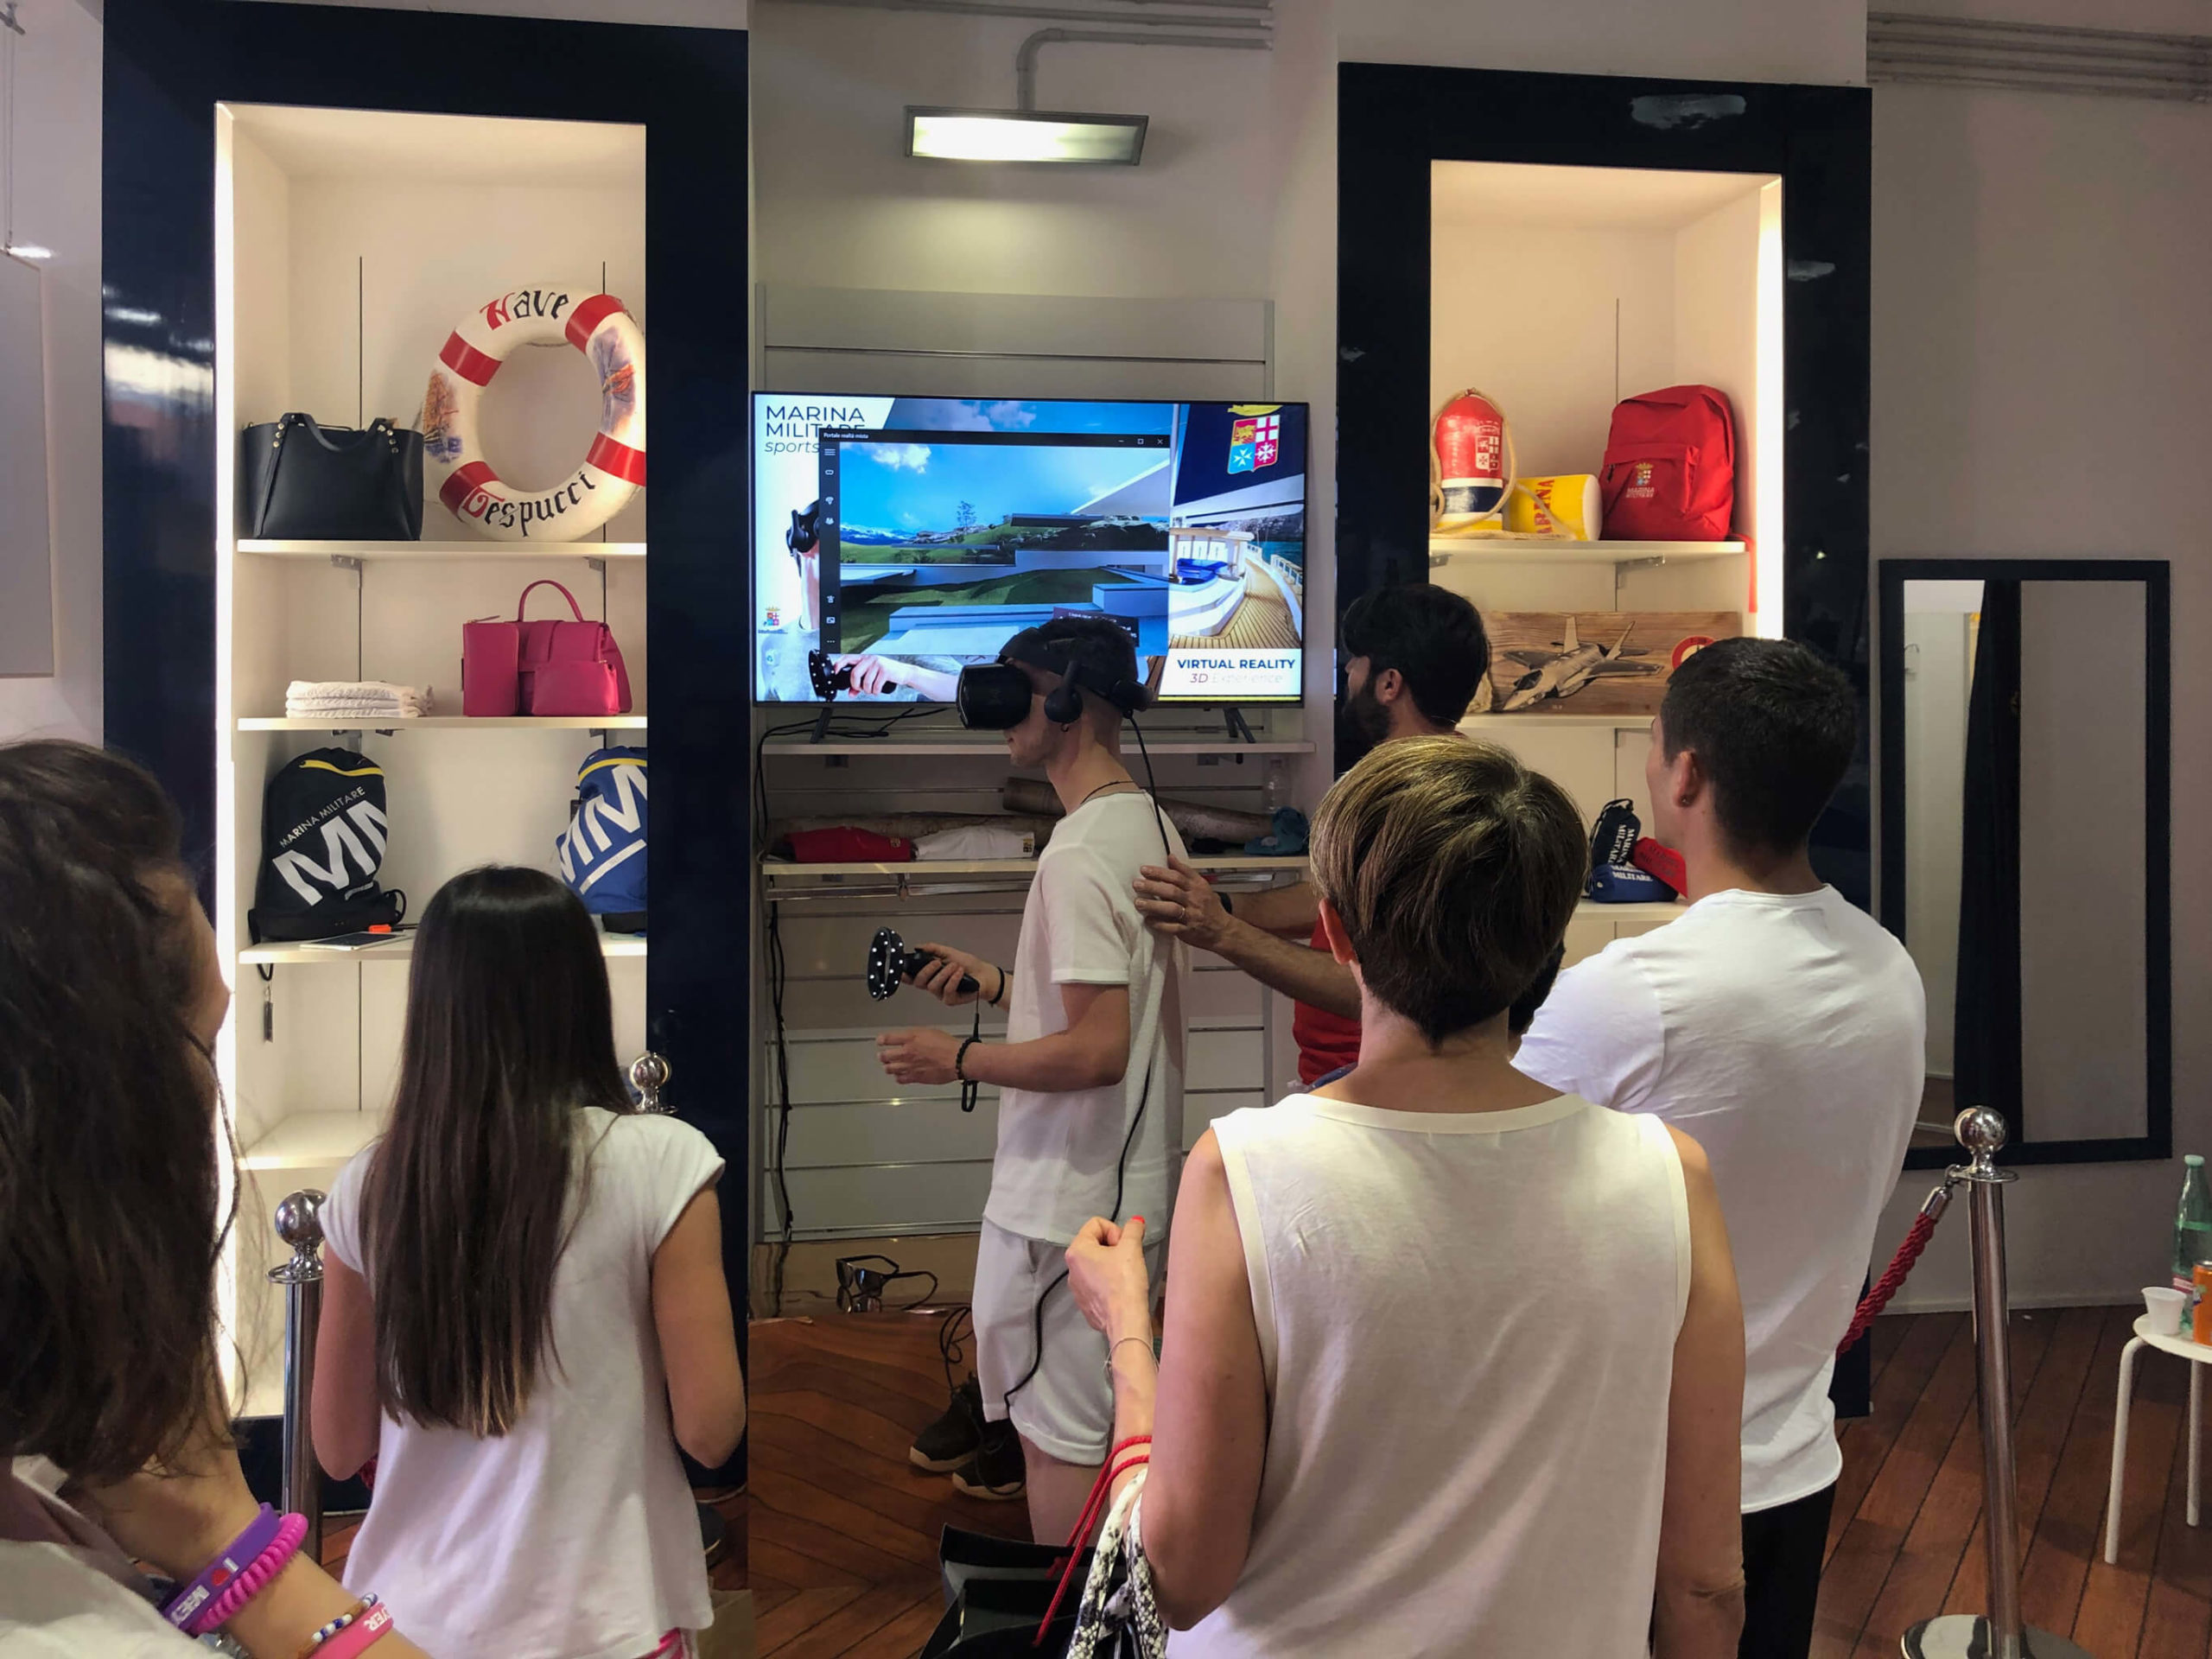 Evento VR e-commerce di Marina Militare Sportswear con Superresolution